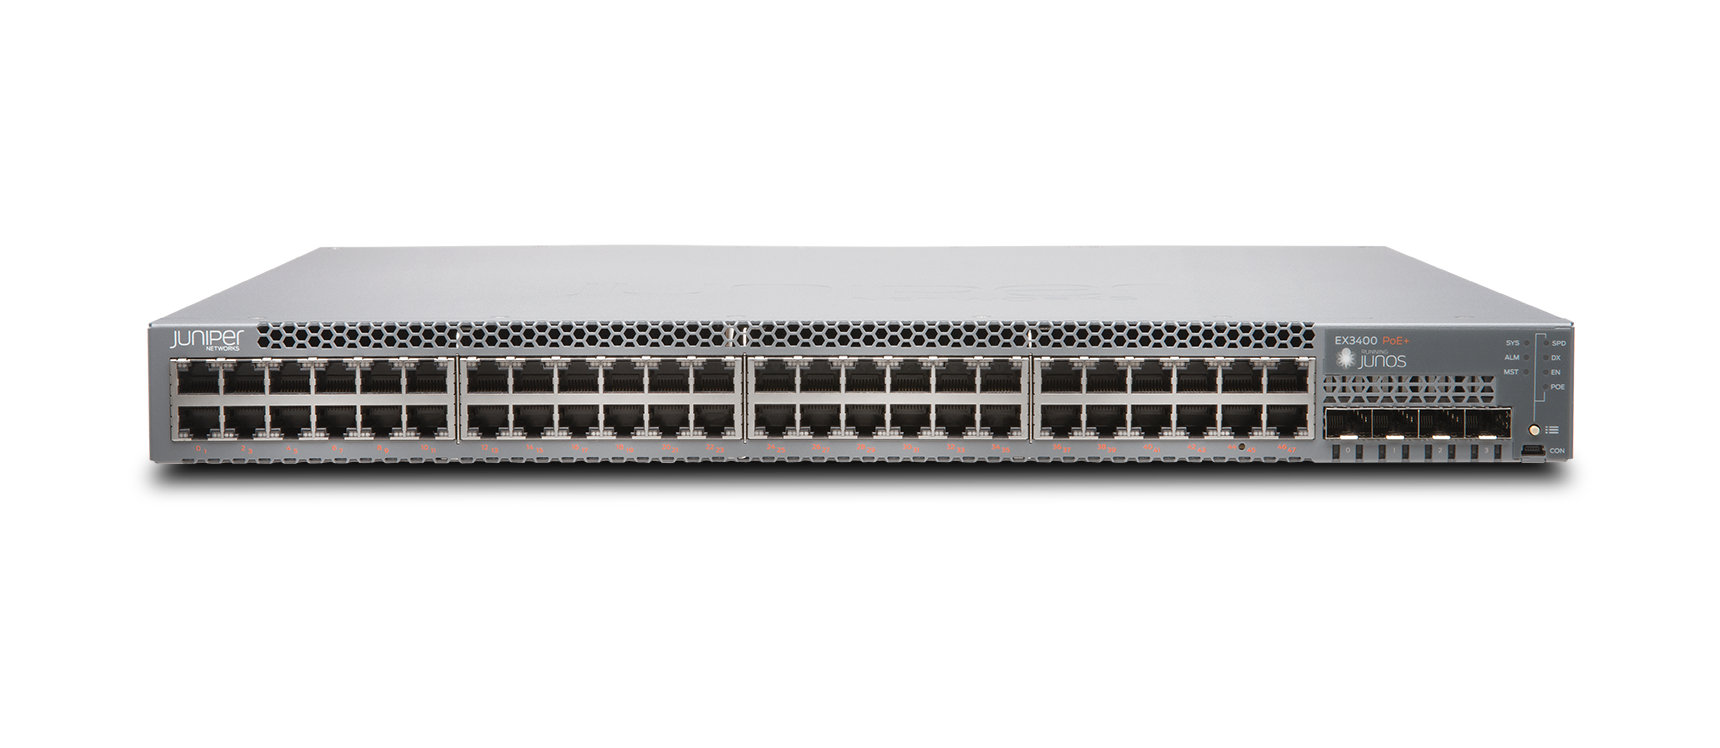 Ex Series Ethernet Switches Juniper Networks